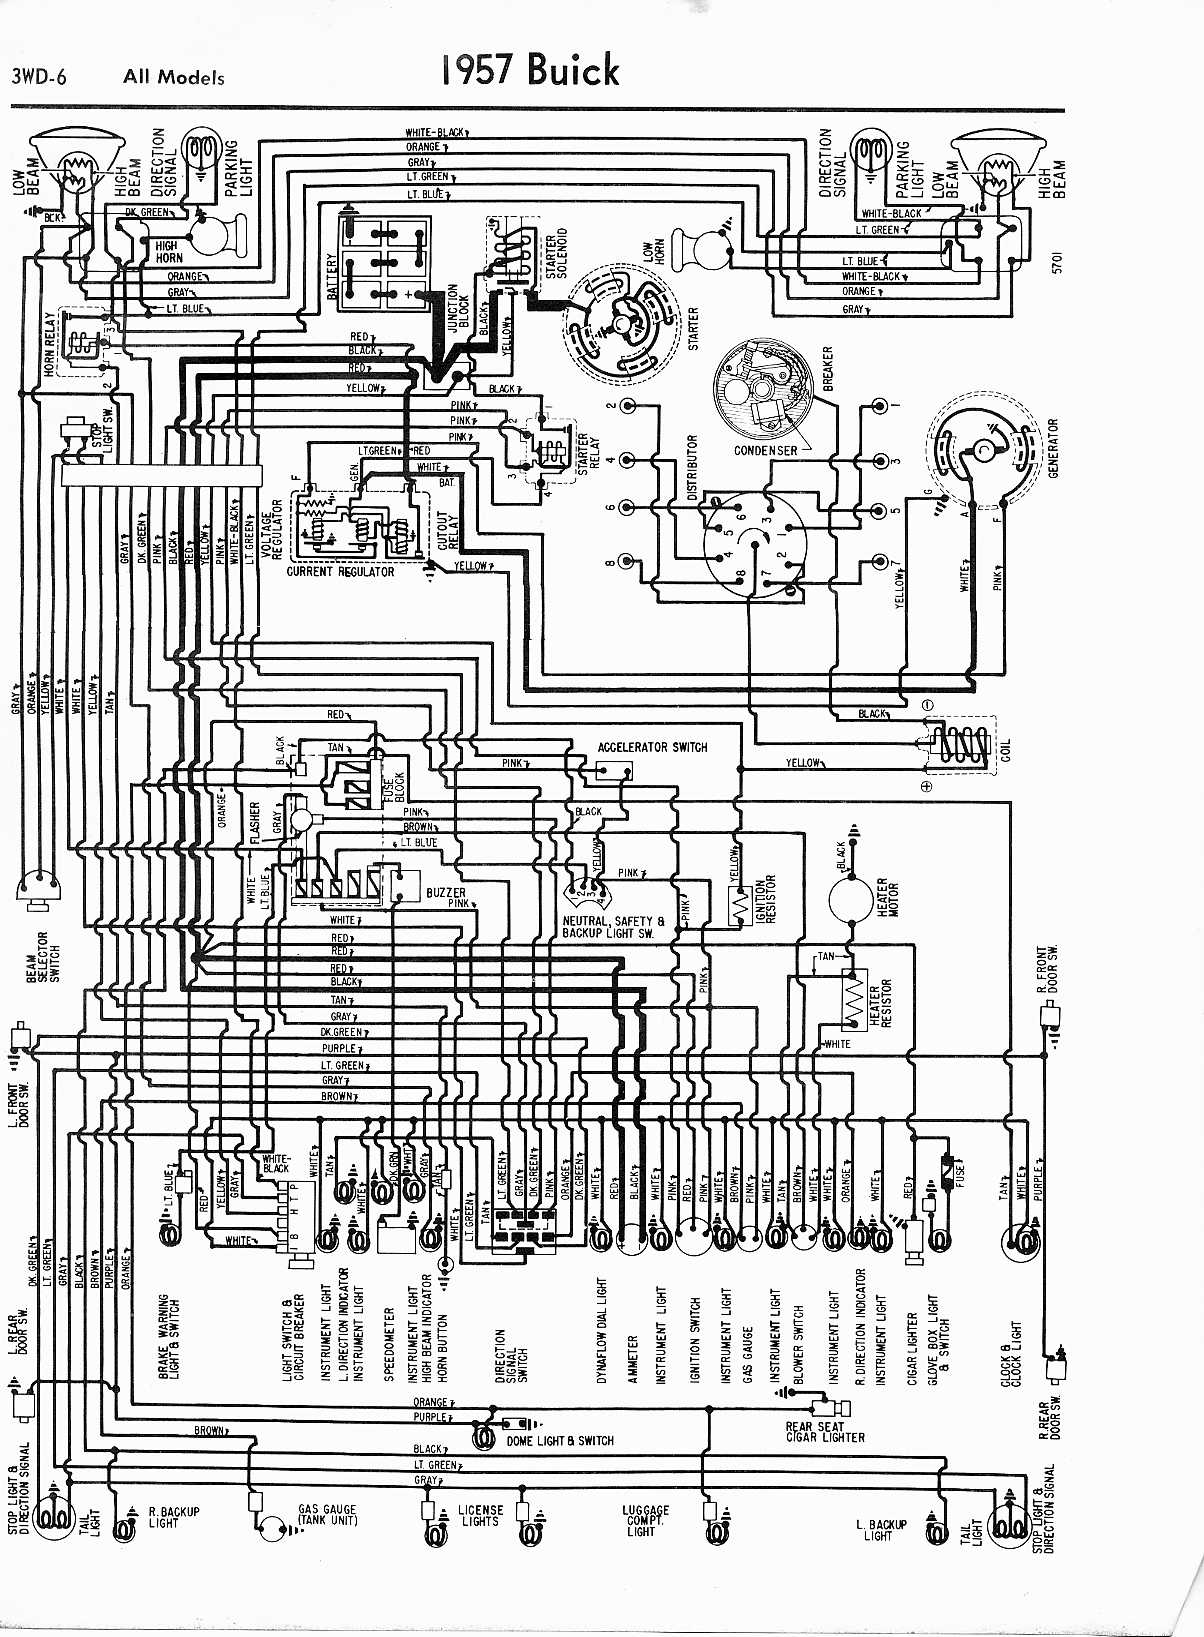 1964 Riviera Wiring Diagram Content Resource Of Wiring Diagram \u2022 1953  Buick Special Wiring Diagram 1966 Buick Riviera Wiring Diagram